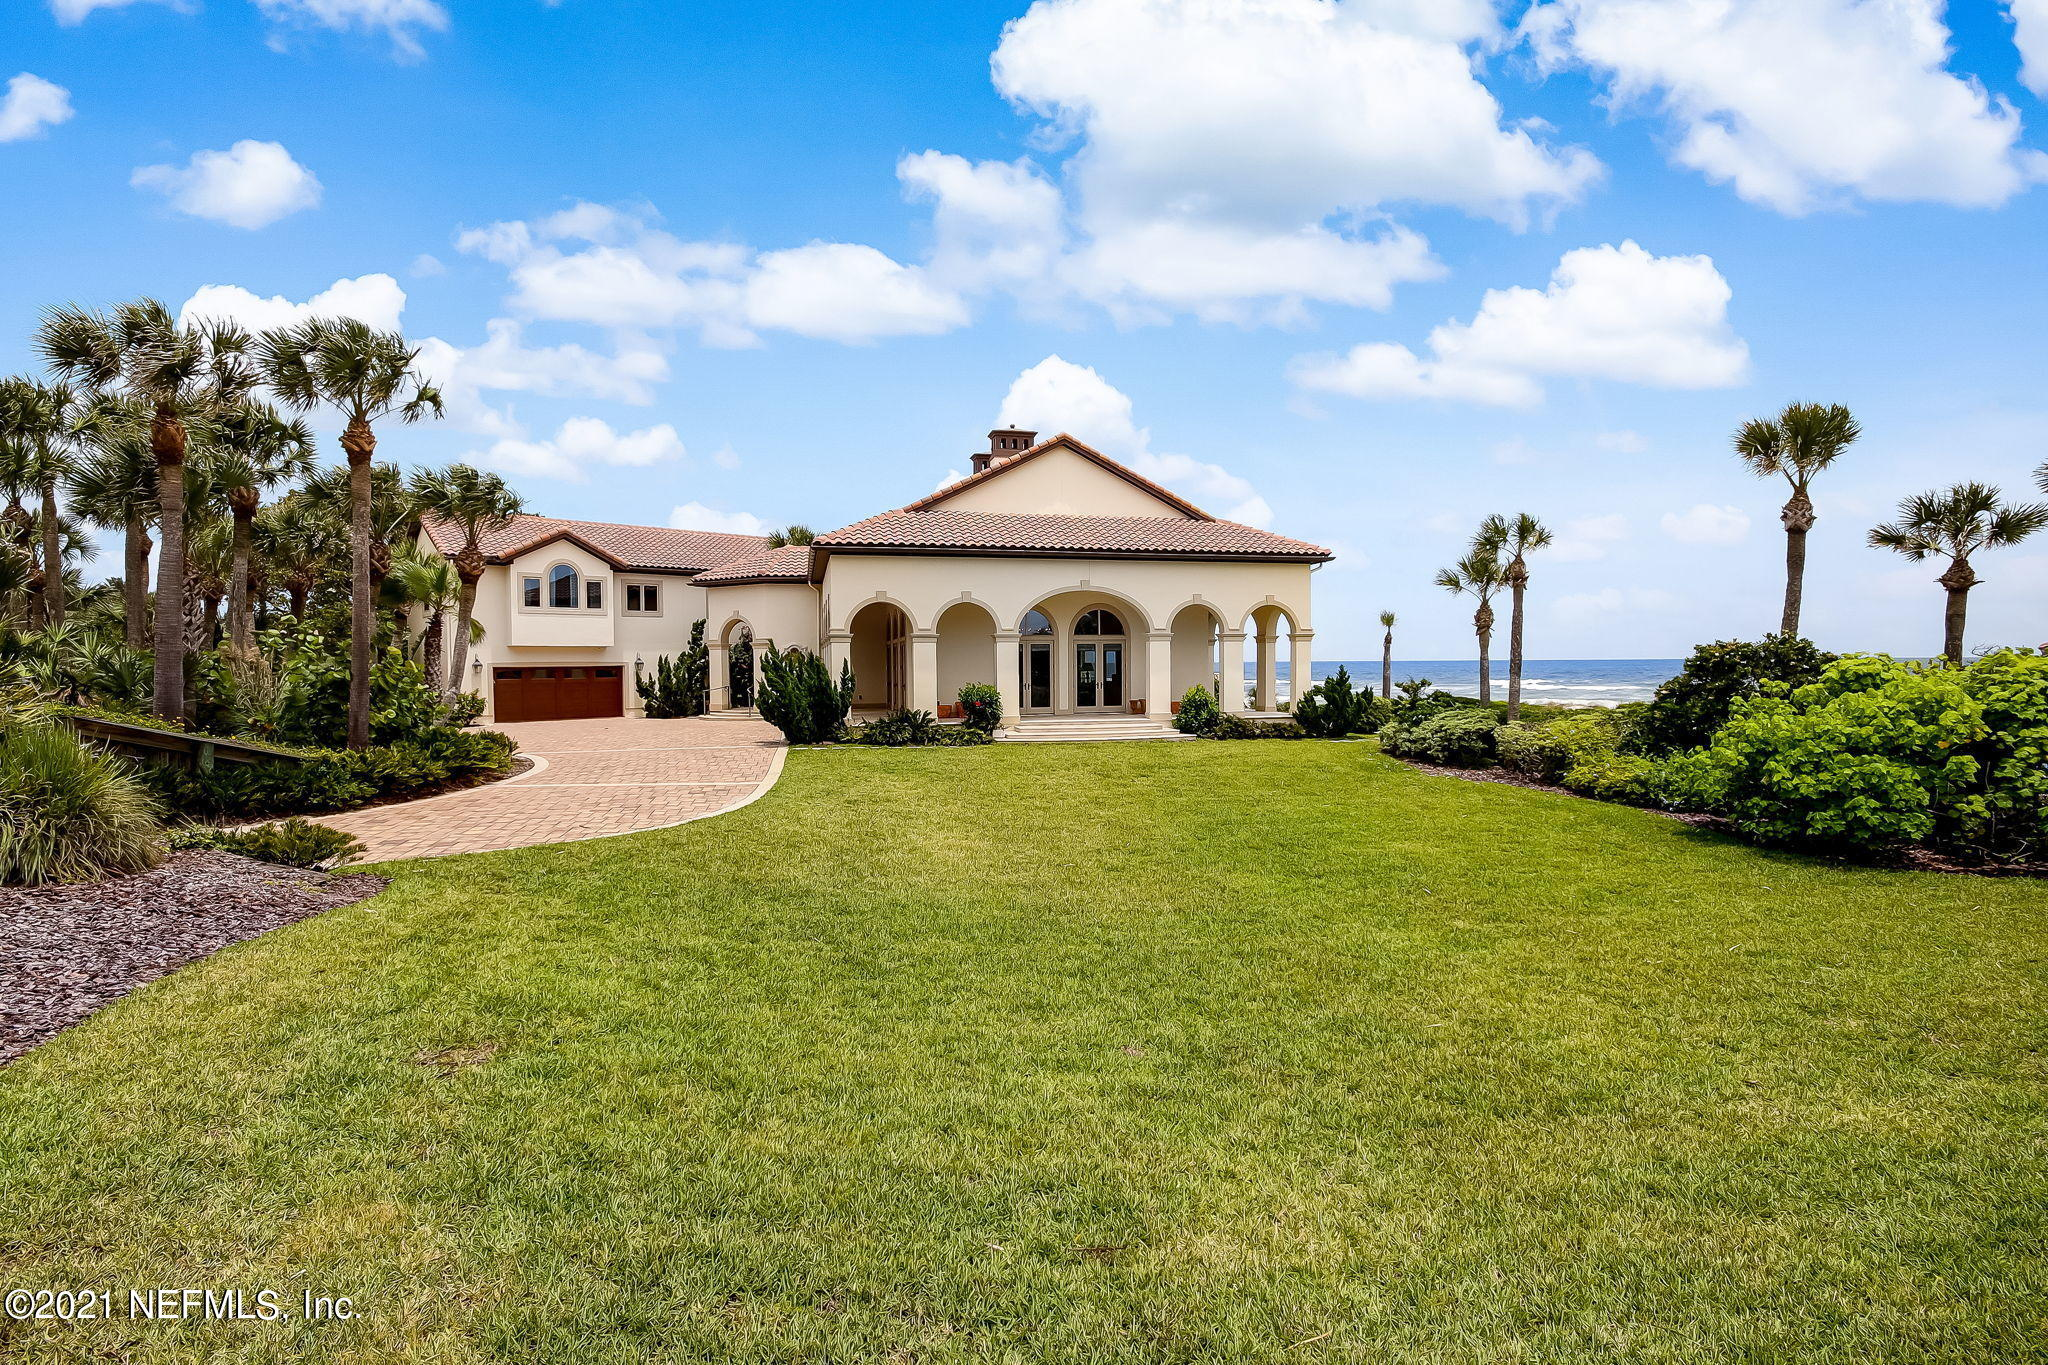 Enter this gated estate and be blown away by the magnificent house, sweeping green lawn, sparkling pool and the expansive ocean view. This  amazing lot has everything  a buyer could wish for located on the ocean in prestigious Ponte Vedra Beach.  Lightly lived-in, the house shows like a model and takes advantage of the ocean views from every room on the 1st and 2nd floors. All furnishings are available for purchase separately.